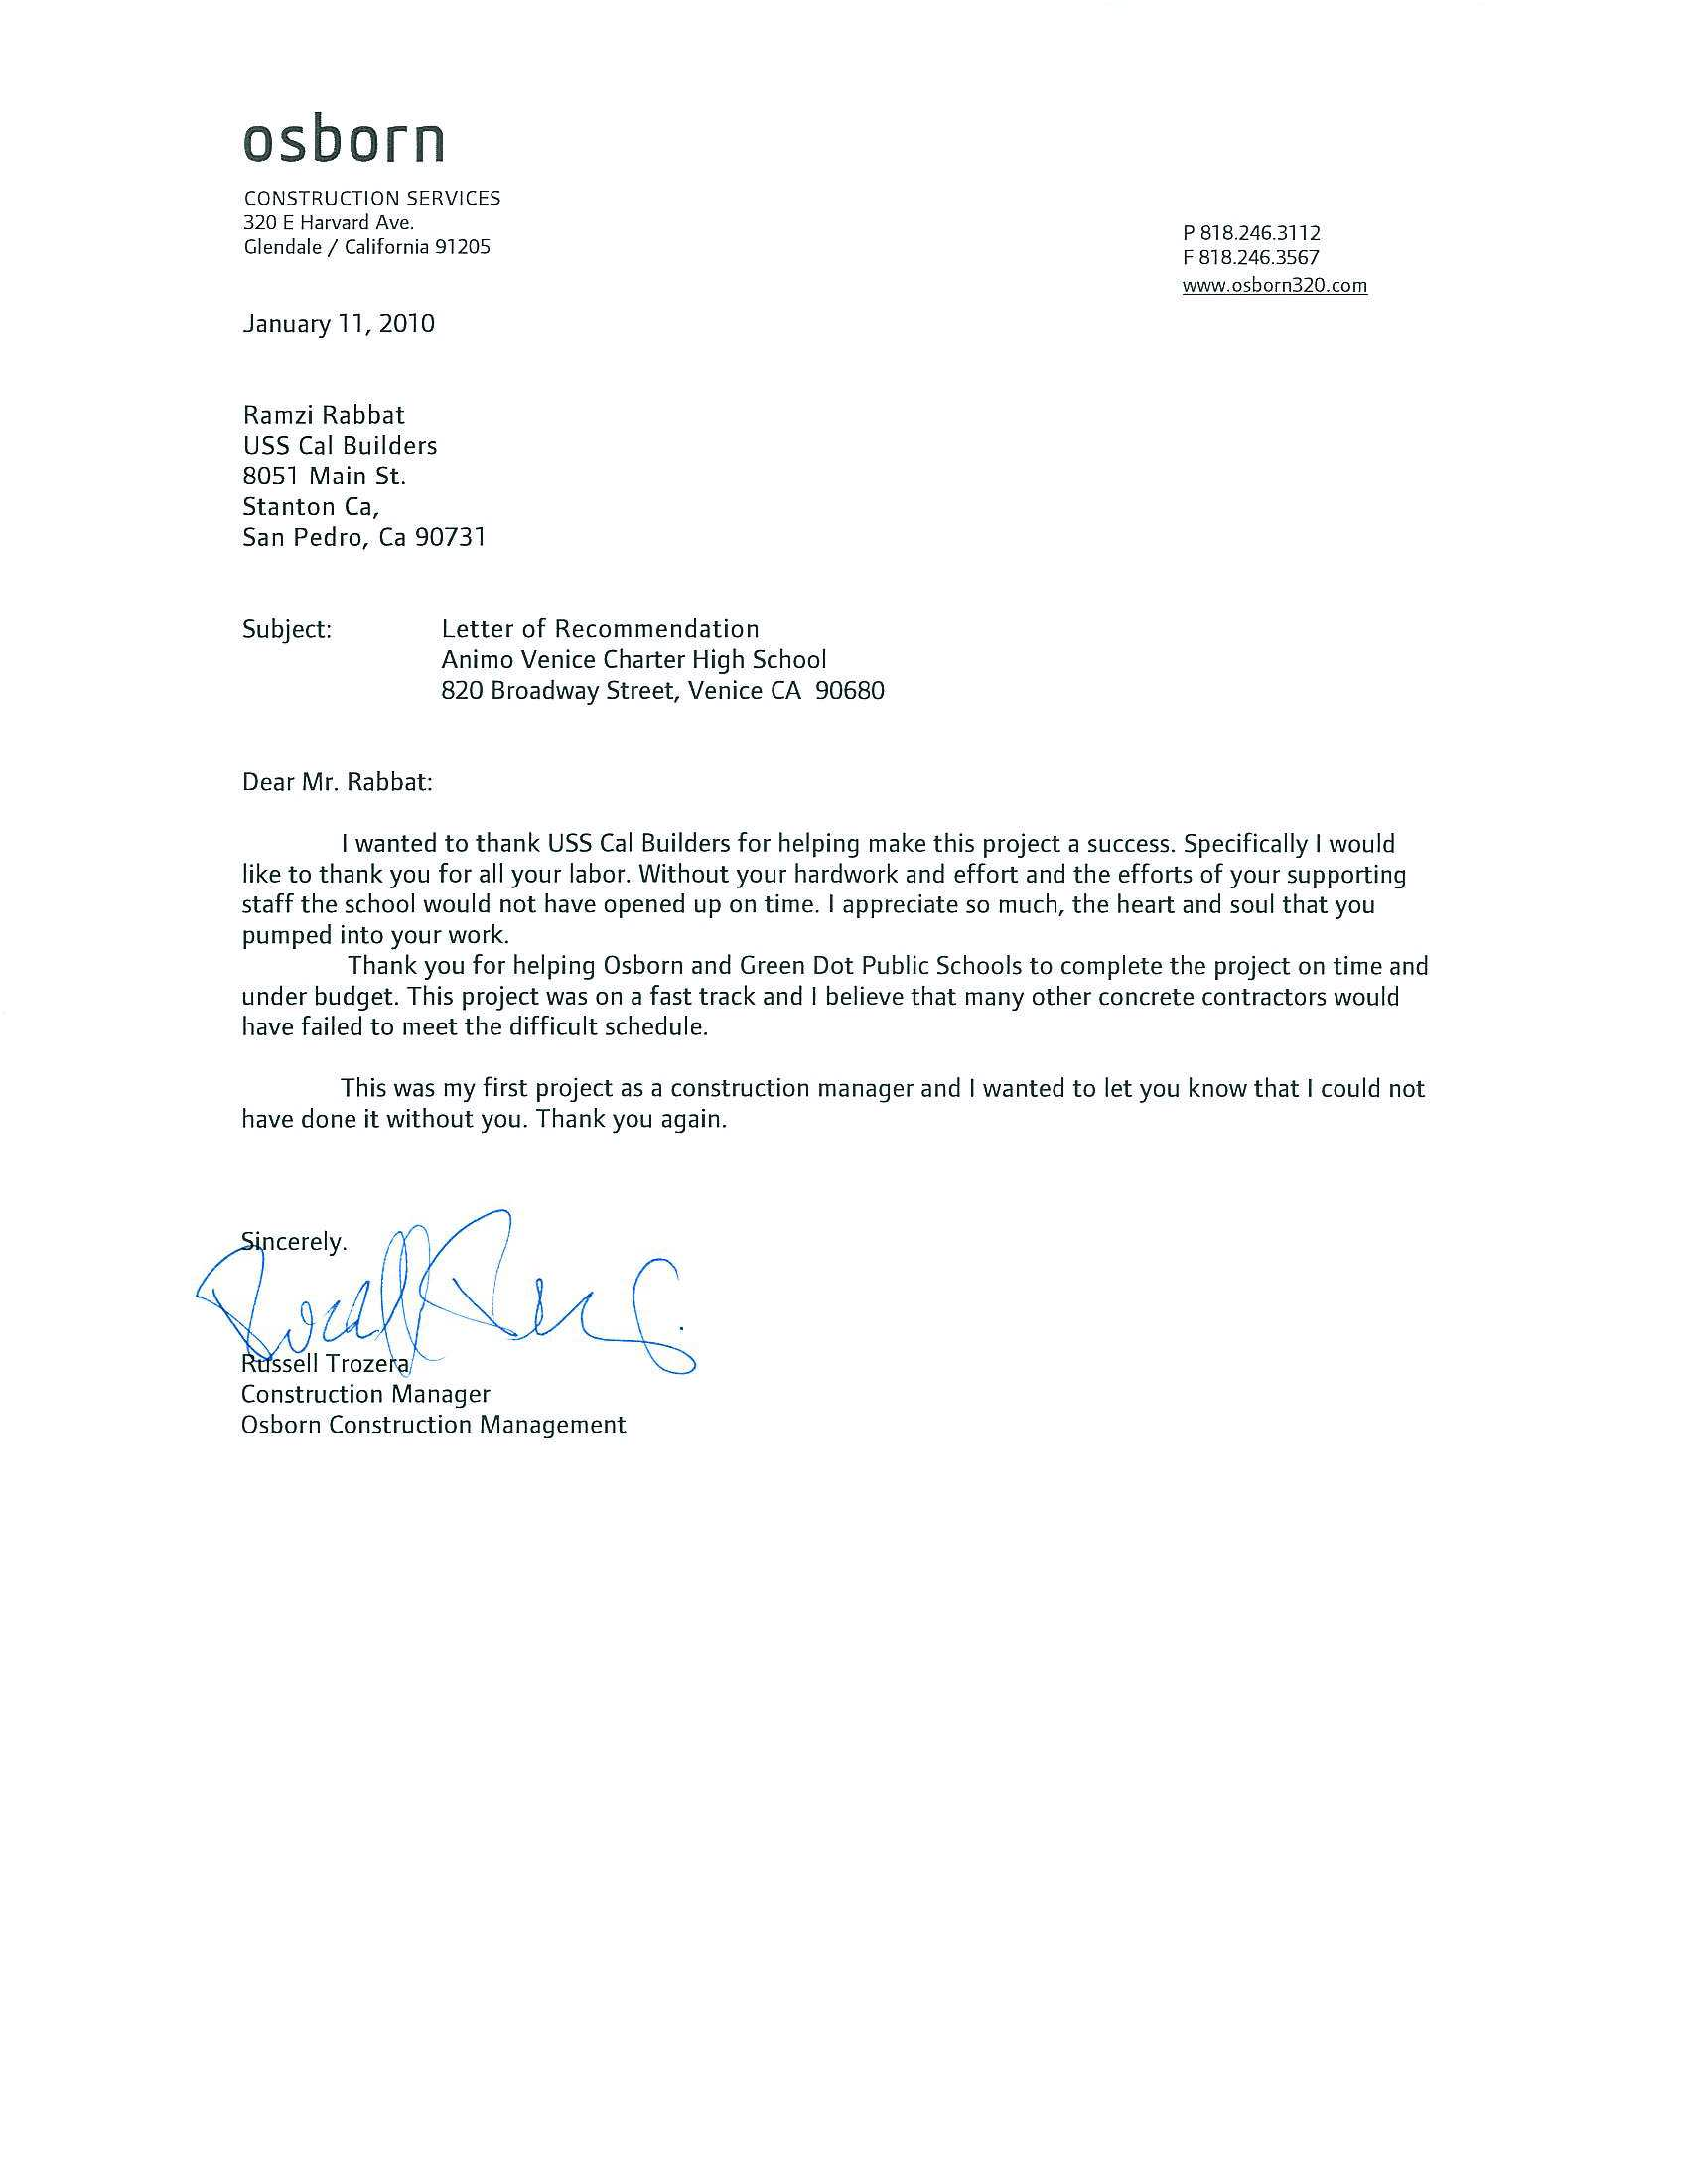 Free Recommendation Letter Download – Sample Format of Recommendation Letter